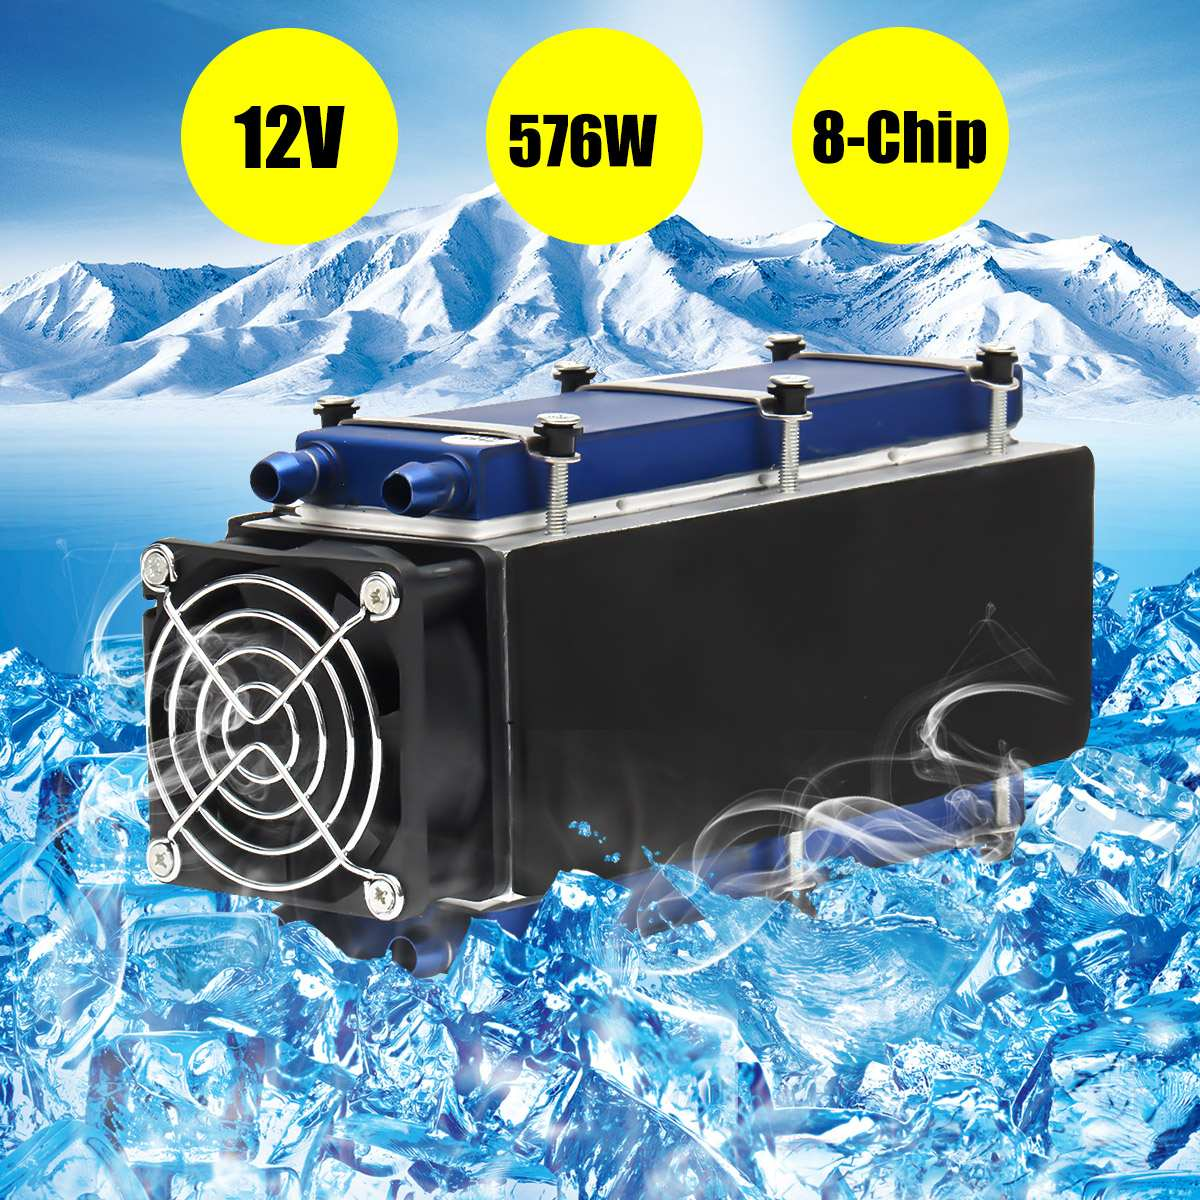 12V Thermoelectric Peltier Refrigeration Cooling System Kit Cooler For DIY TEC-12706 Mini Air Conditioner Integrated Circuits